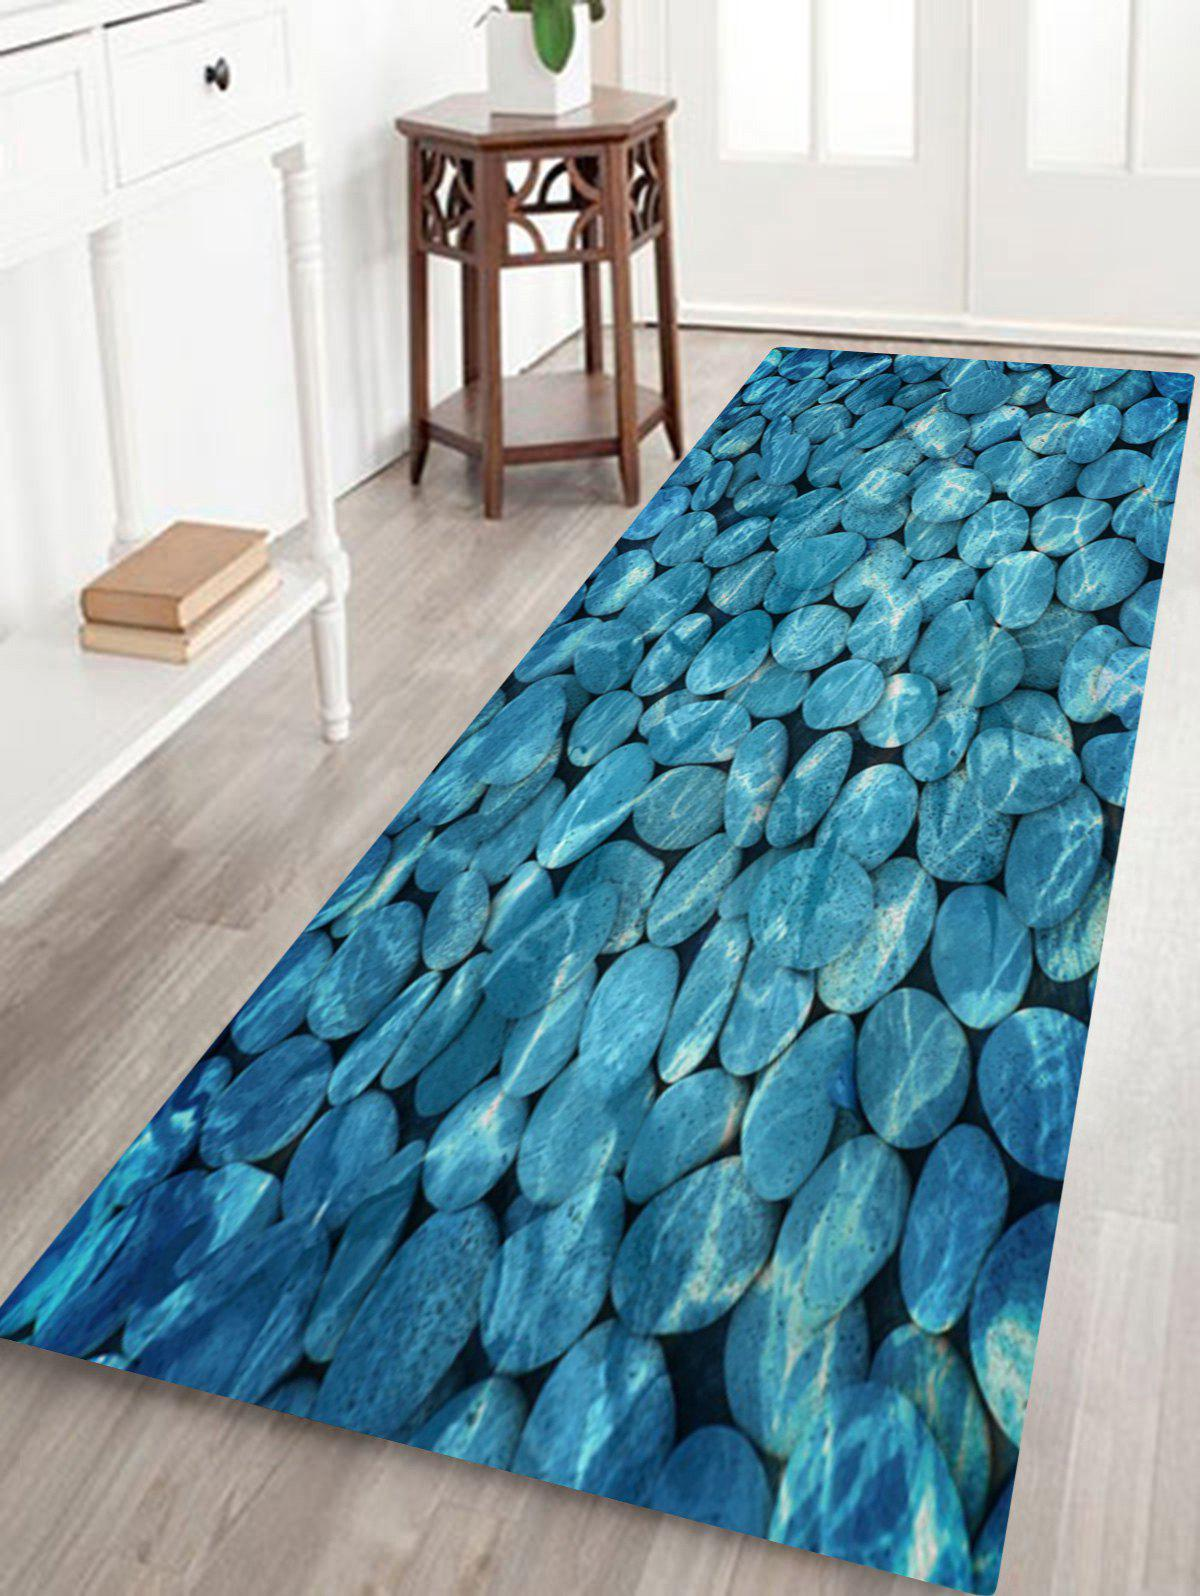 Pebbles In Water Pattern Indoor Outdoor Area Rug - LAKE BLUE W16 INCH * L47 INCH